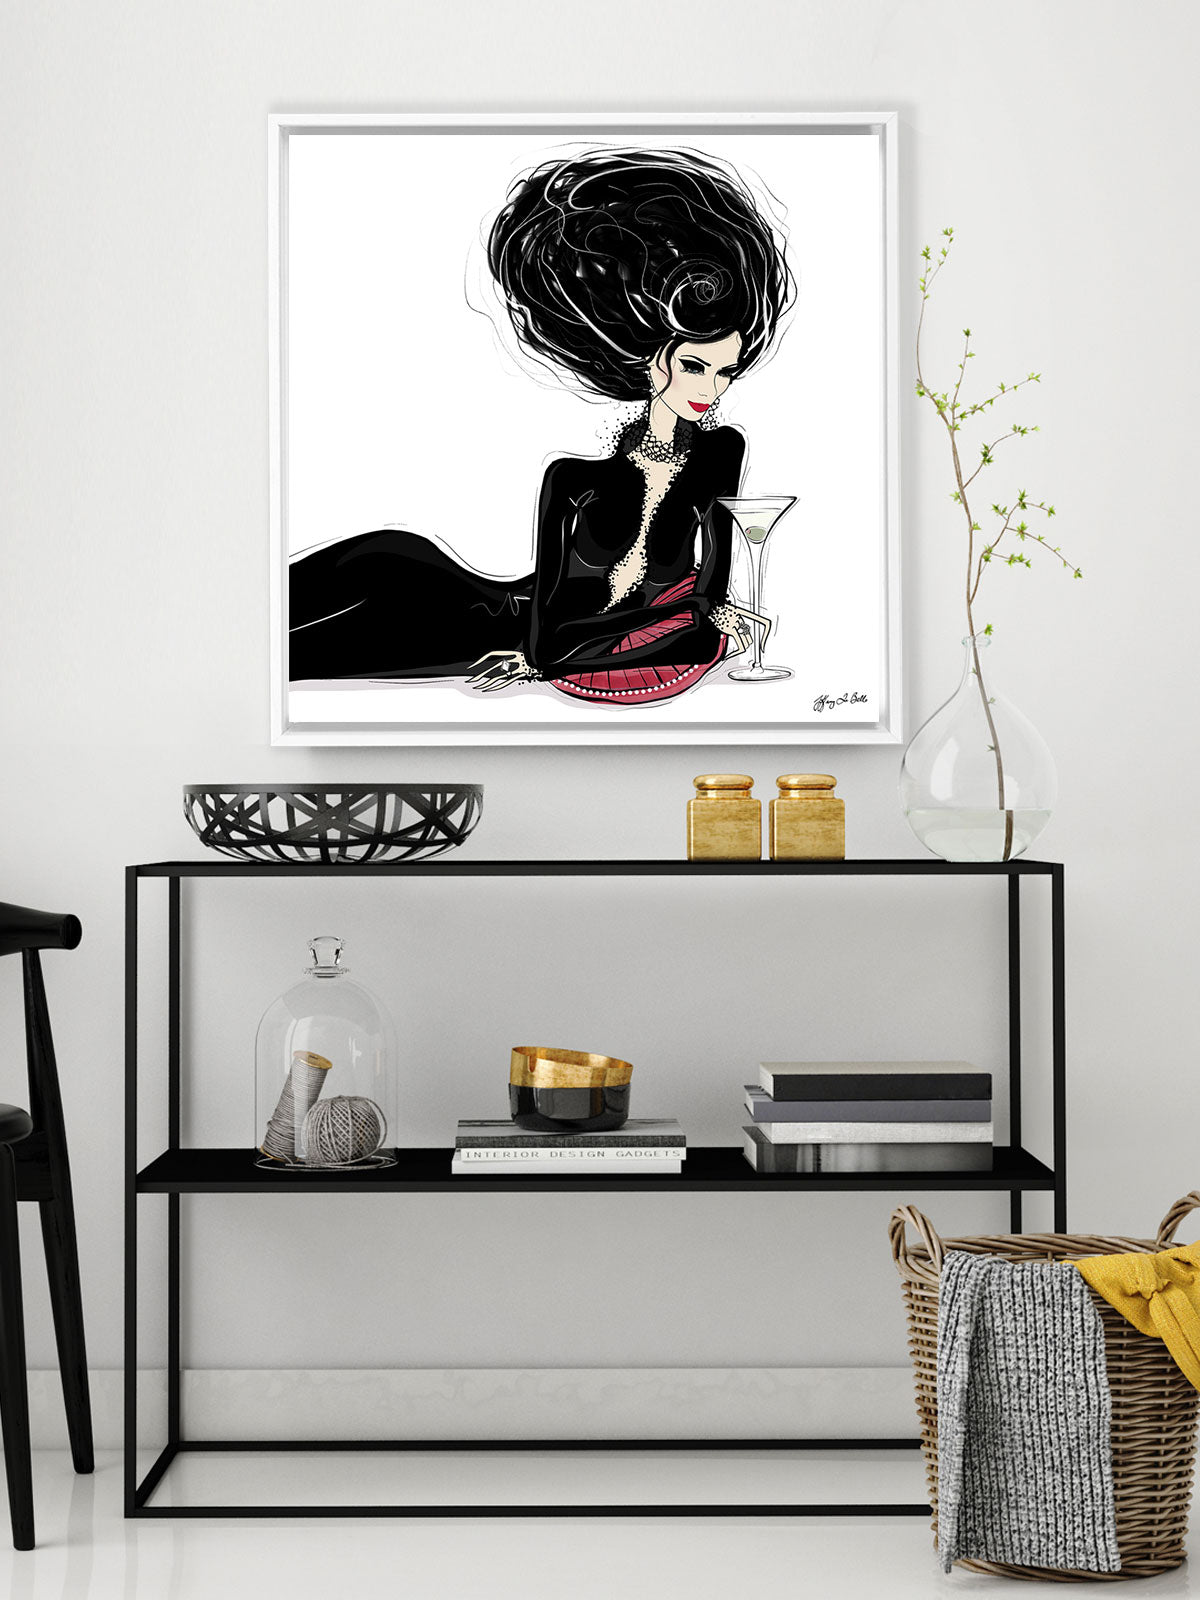 Martini Moments - Illustration - Canvas Gallery Print - Unframed or Framed - Tiffany La Belle